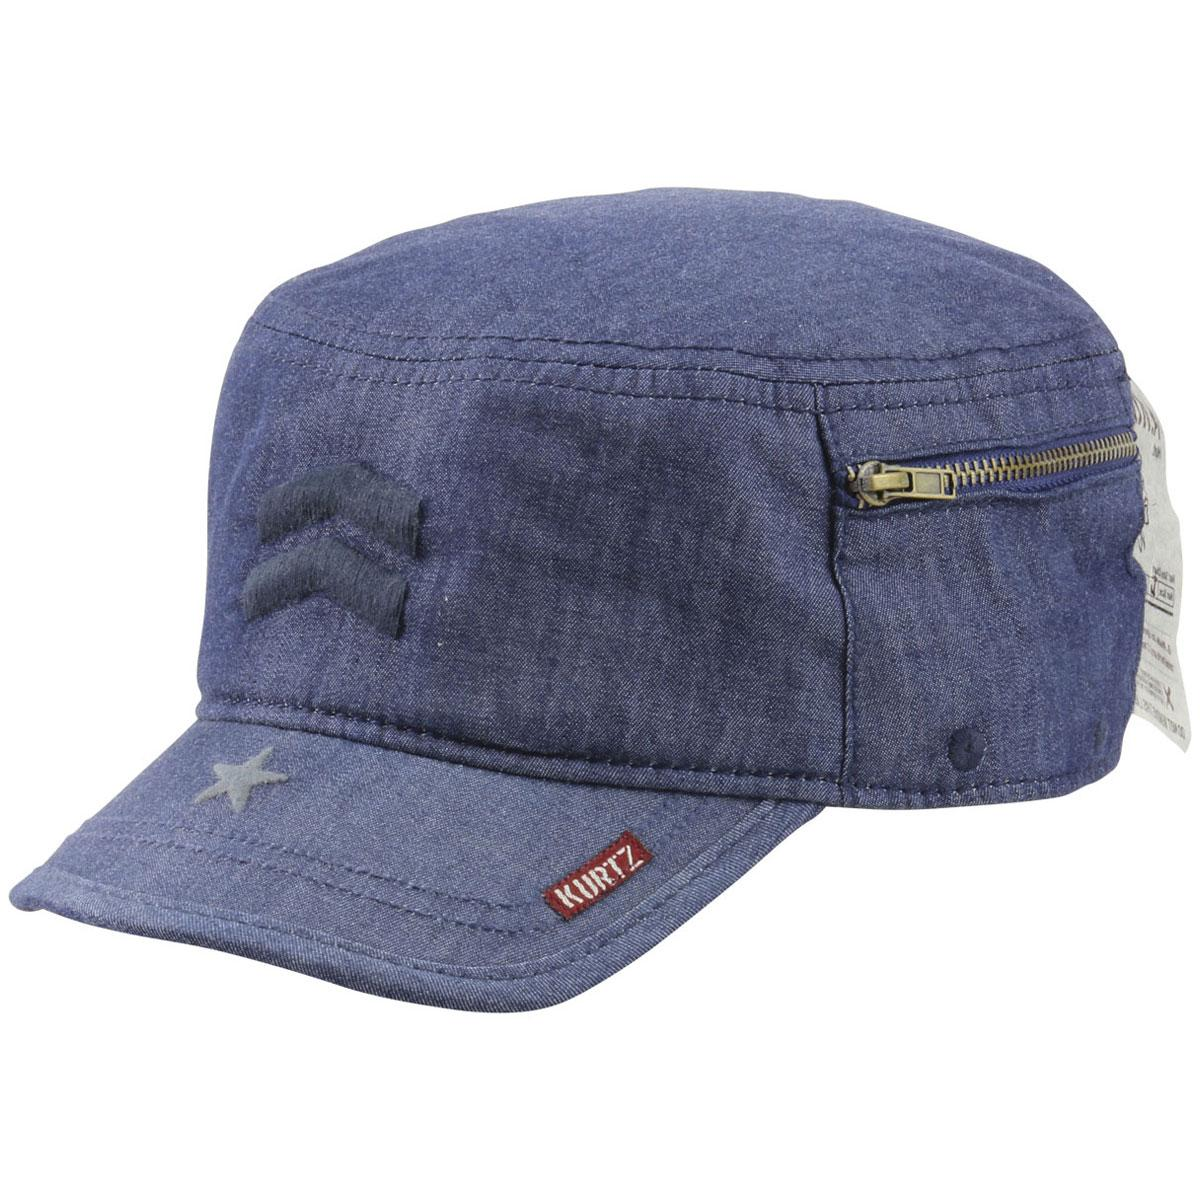 86adc862041 Kurtz Men s Denim Fritz Legion Military Cap Hat